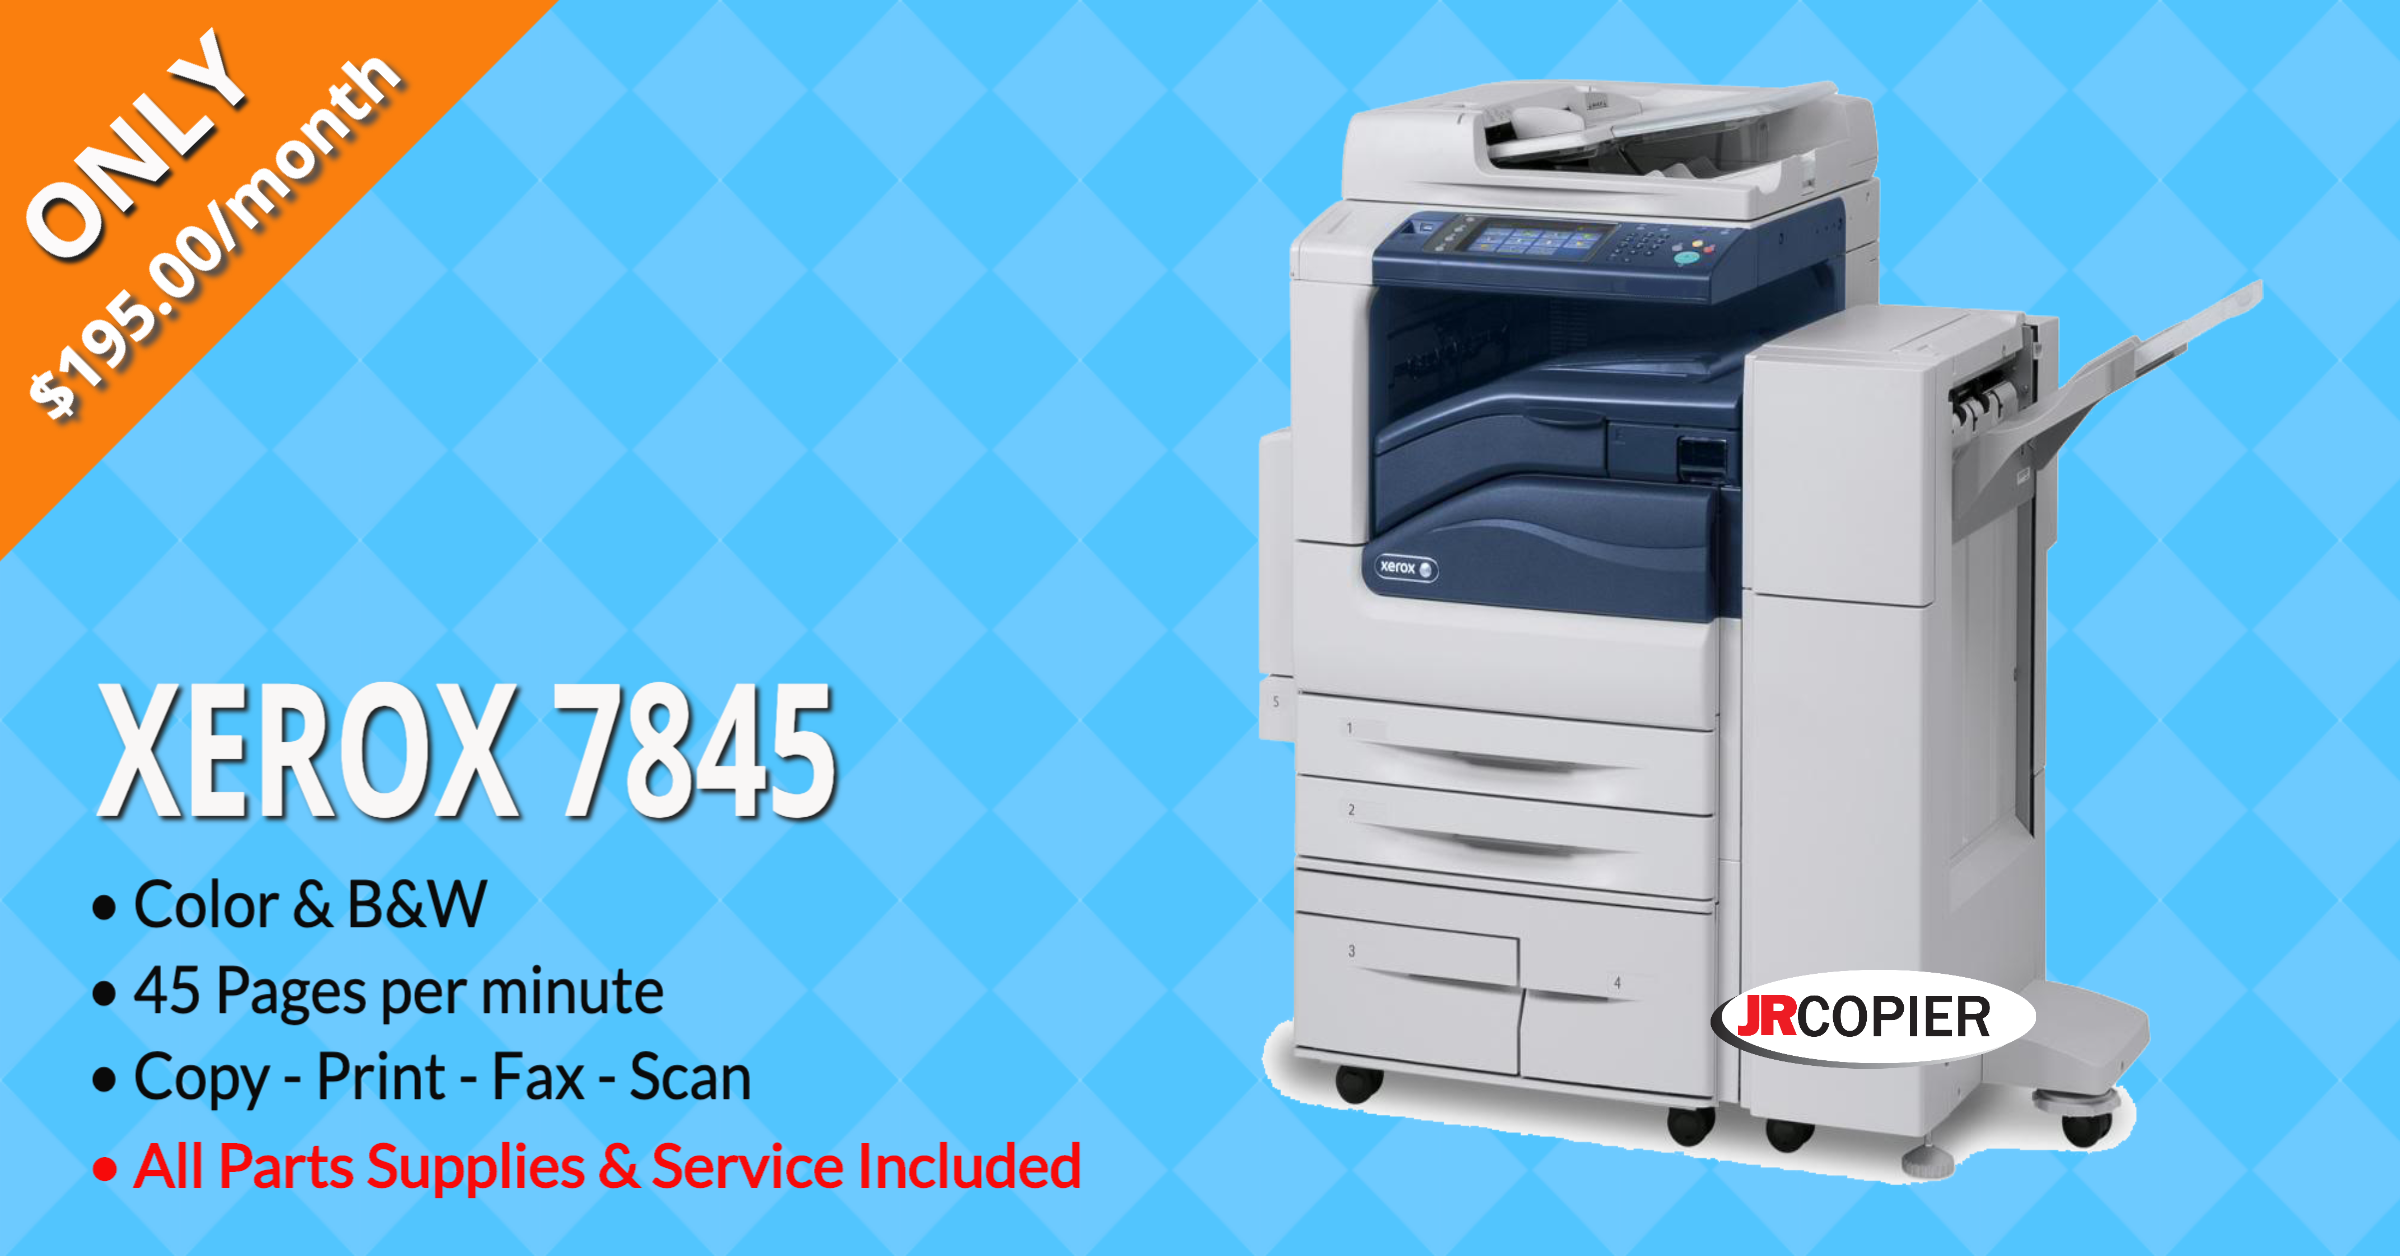 Copy Machine Leasing 93611, 93612, 93613, 93619, 93626, 93727, 93747